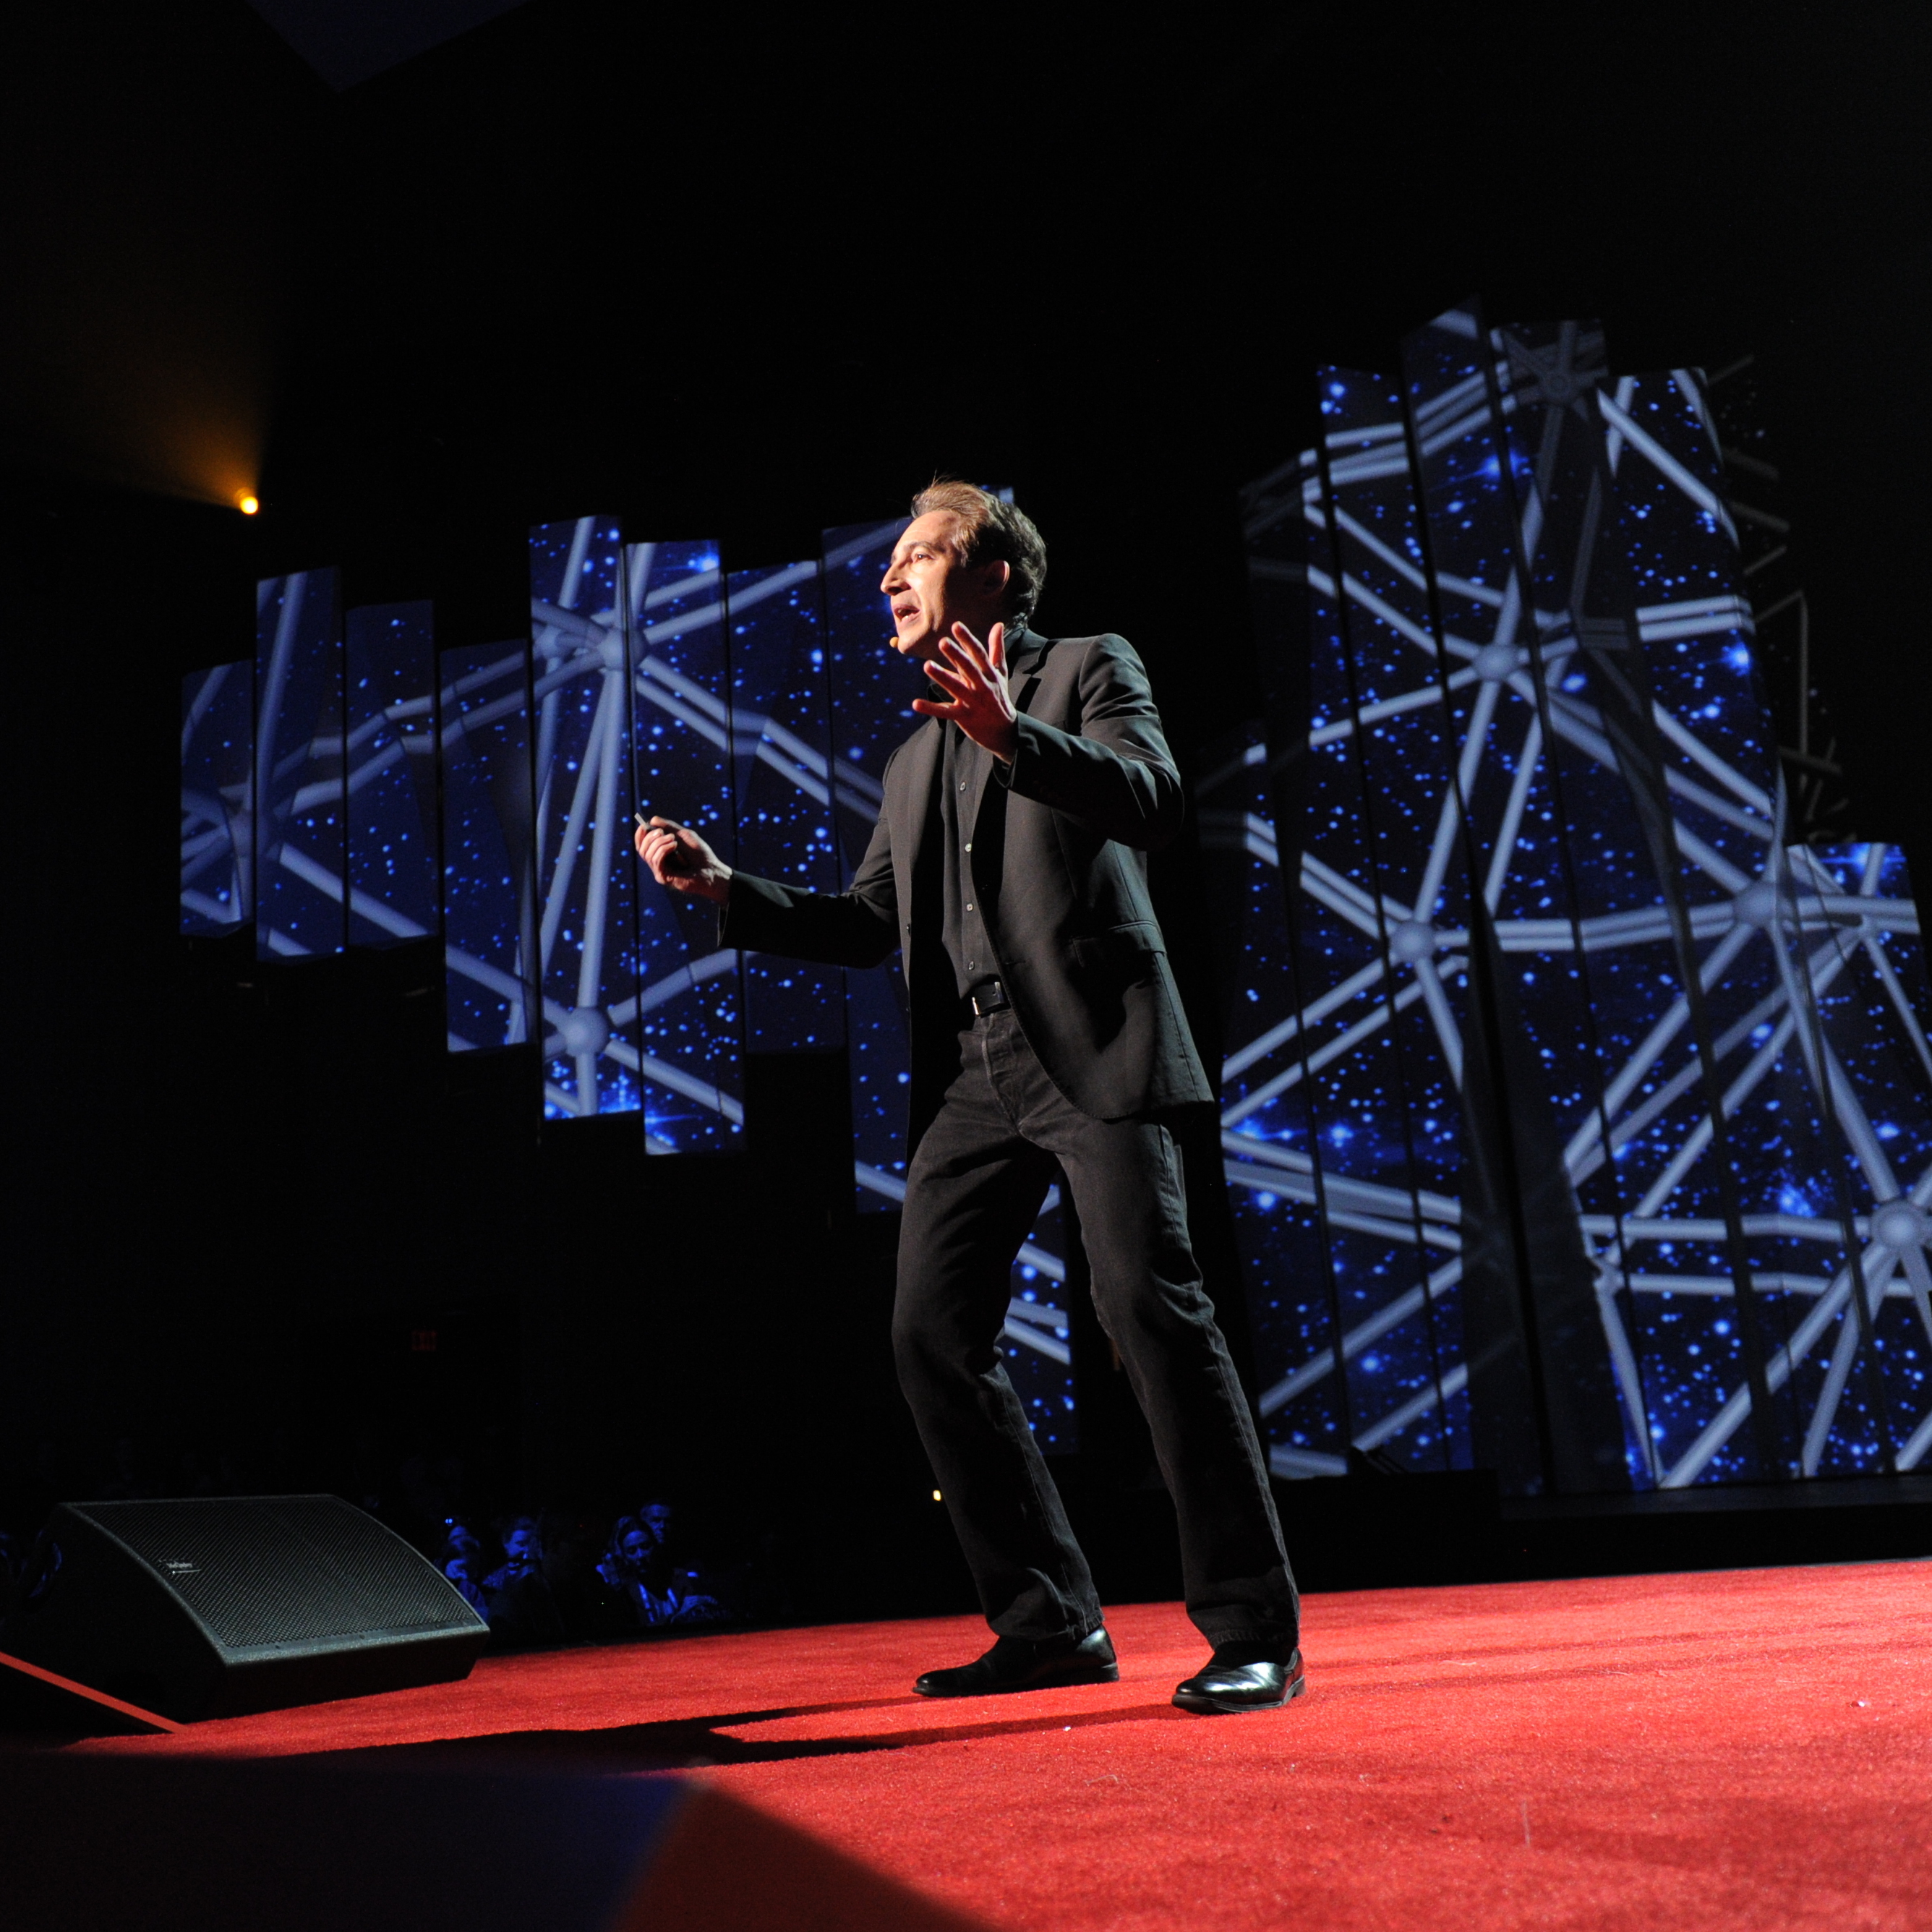 Brian Greene at TED2012.